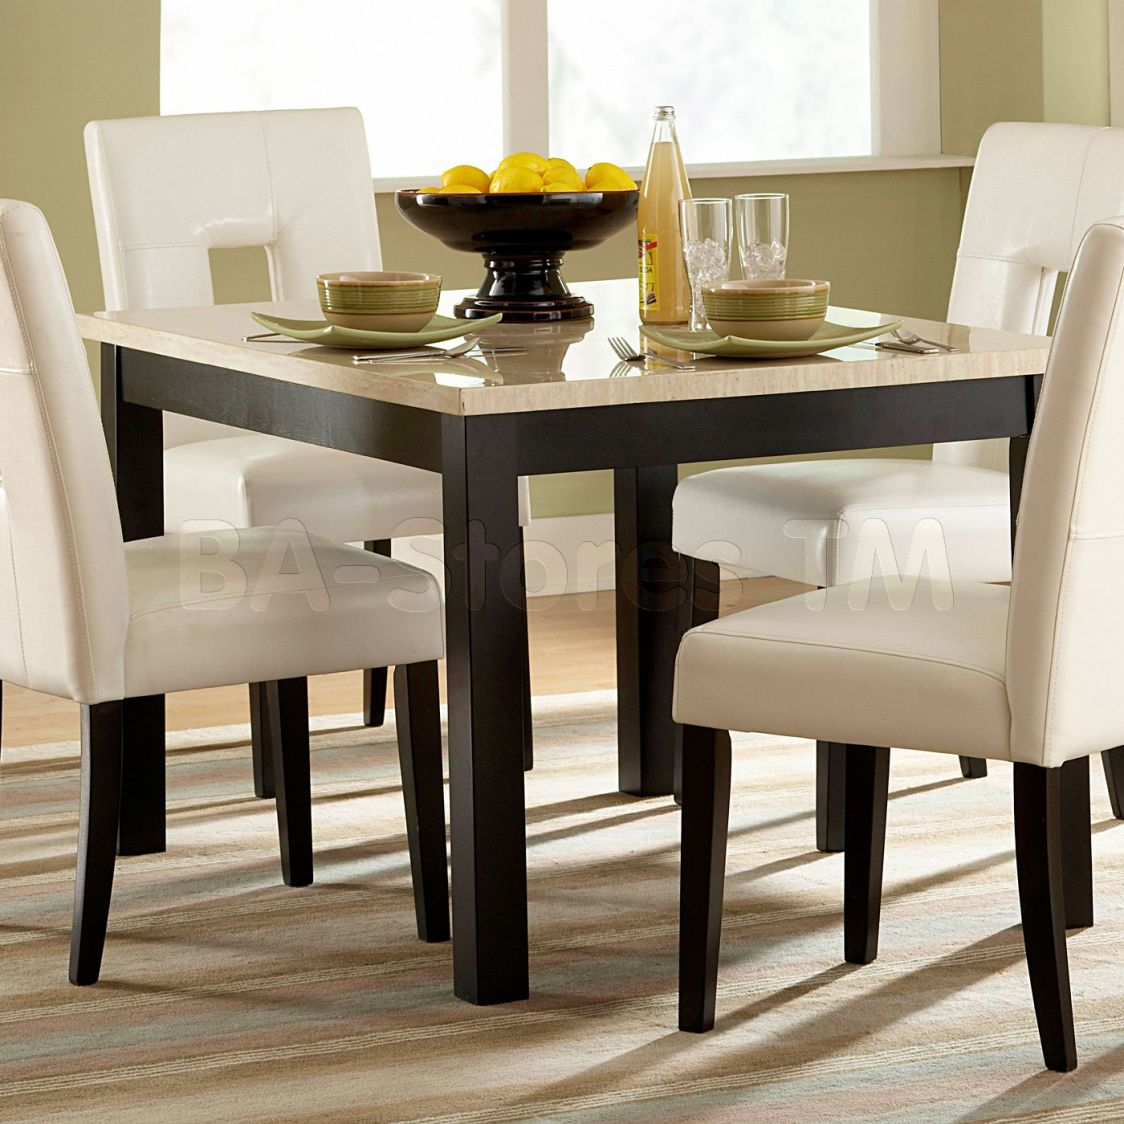 Square Dining Room Table For 4 Best Way To Paint Furniture Check